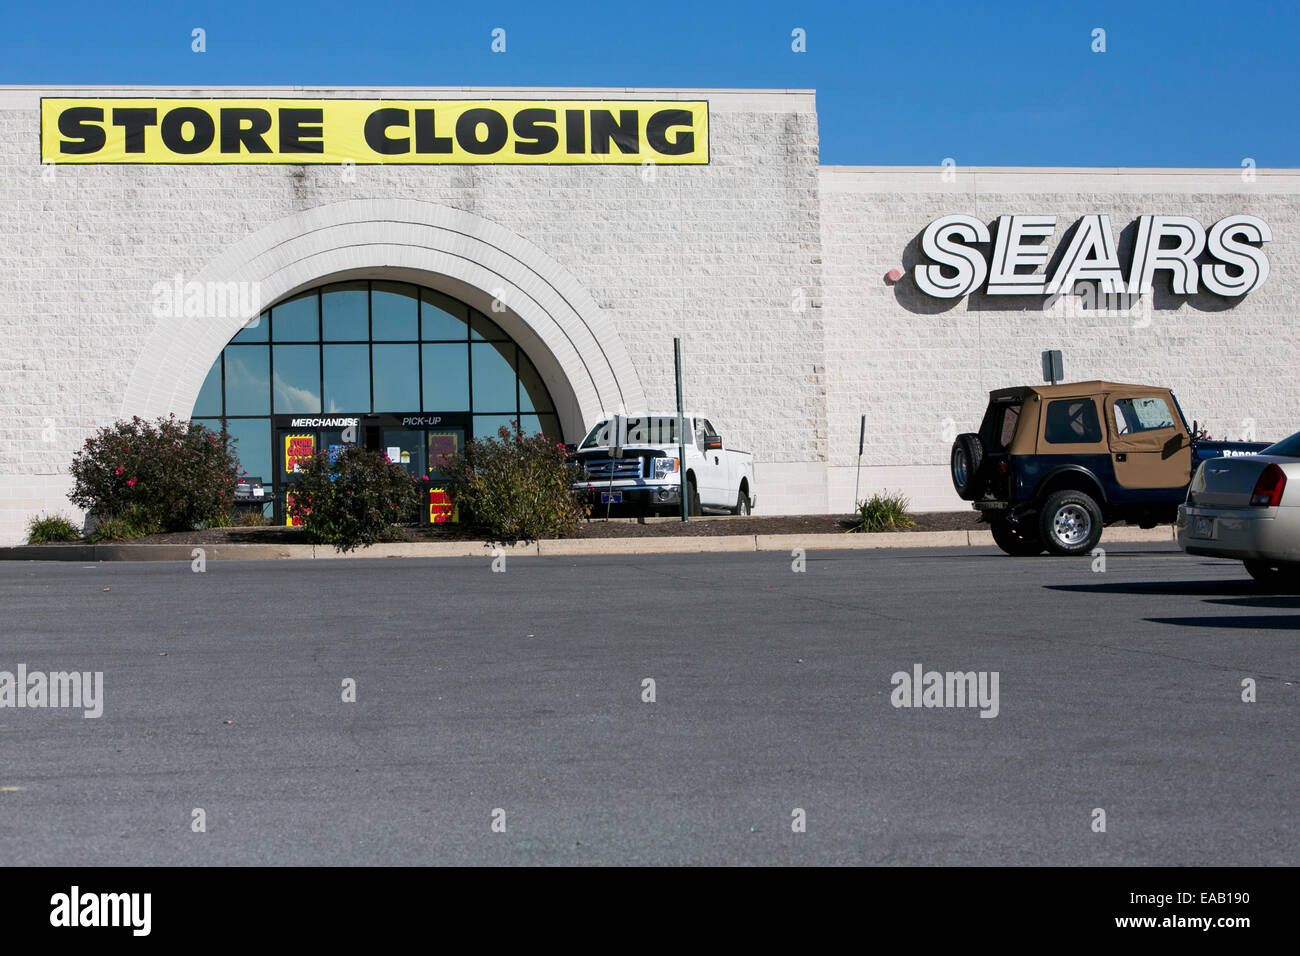 A Sears retail store with a 'Store Closing Sale' banner in Chambersburg, Pennsylvania on November 9, 2014. - Stock Image